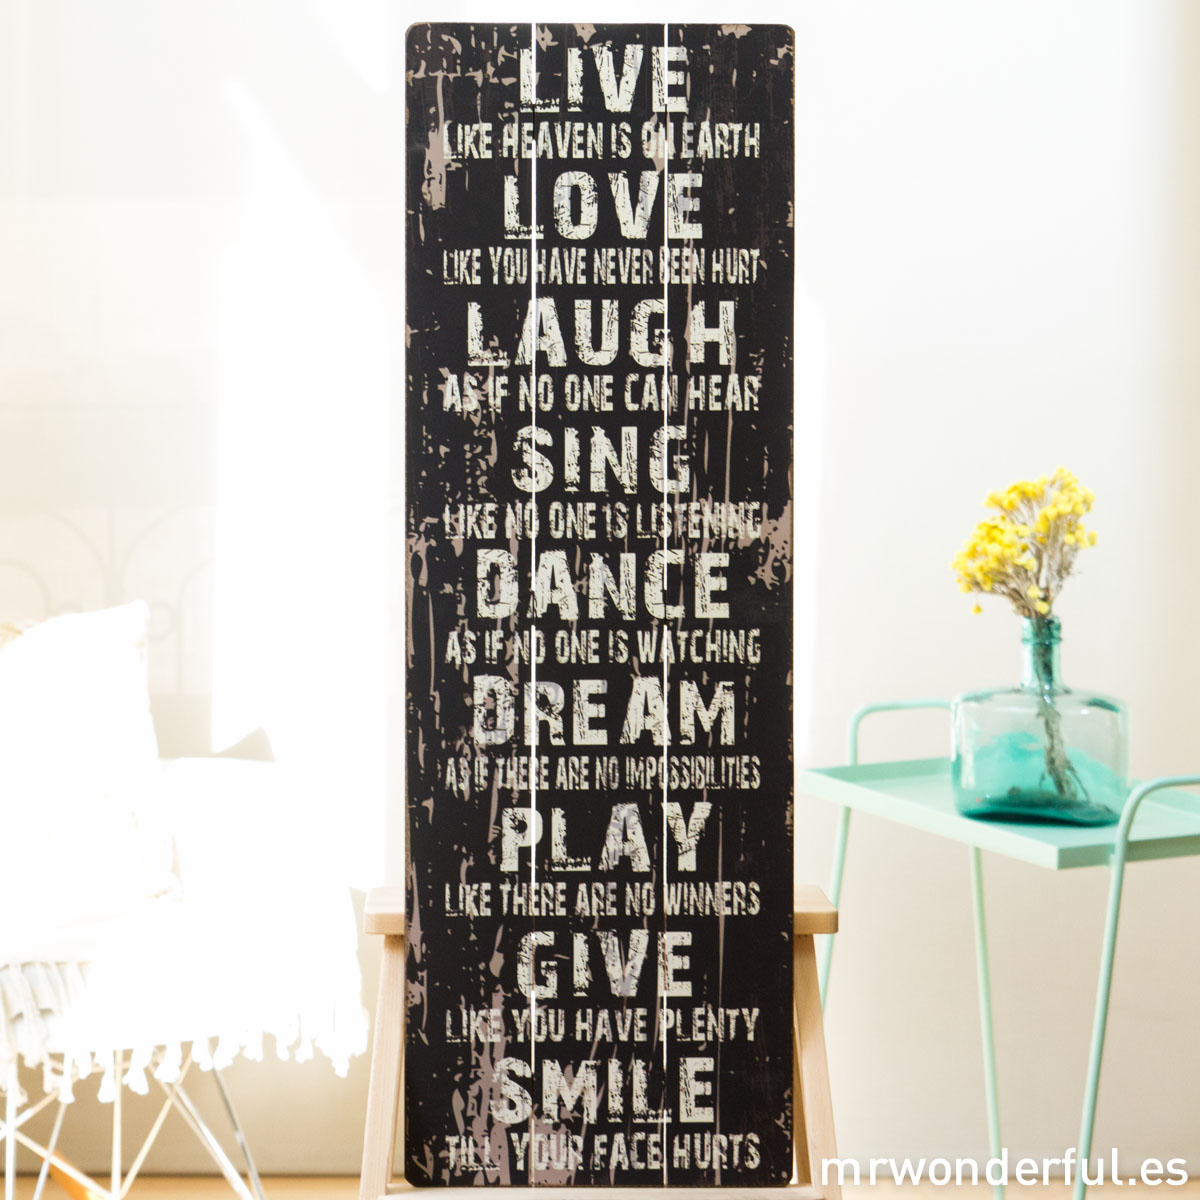 mrwonderful_GI6006_2_letrero-madera-mediano_live-like-heaven-on-earth-2